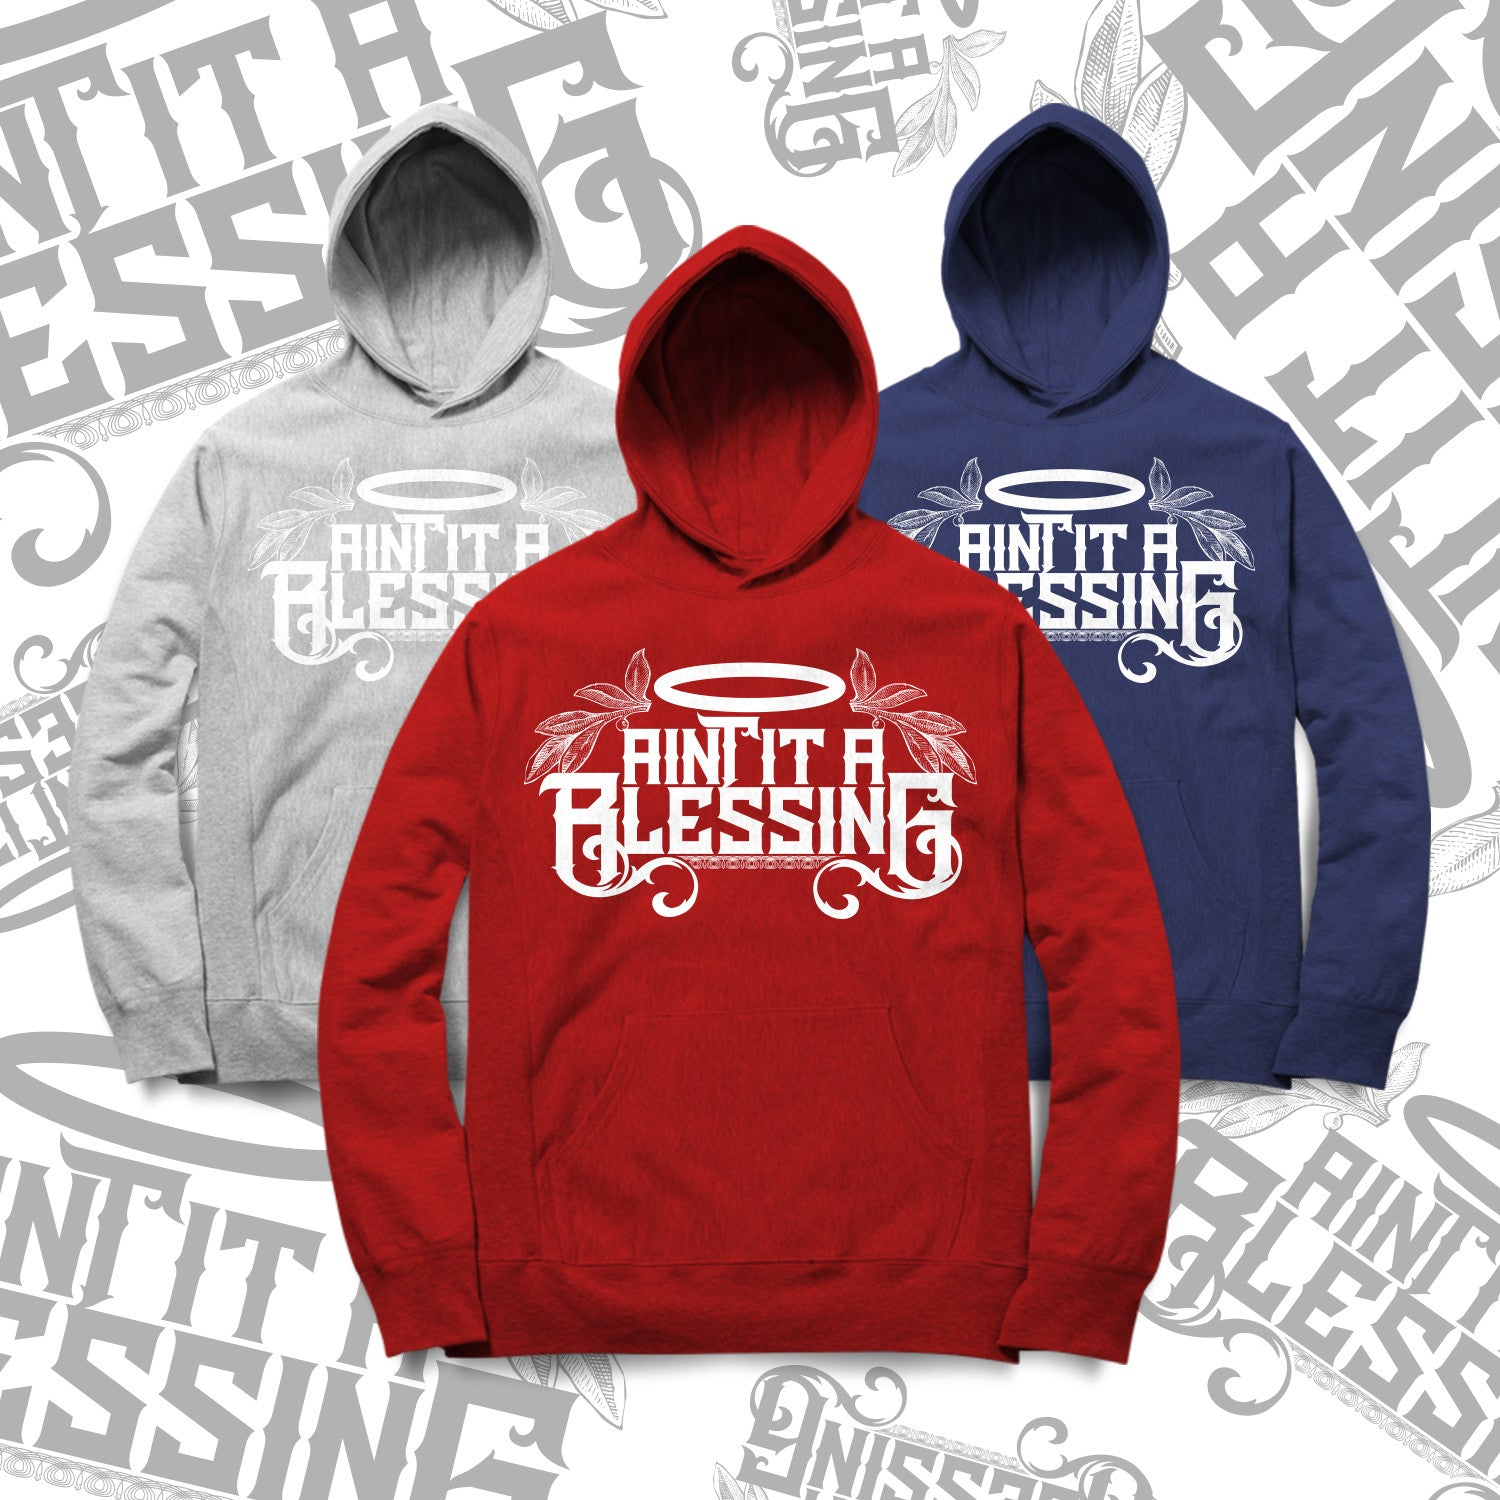 AINT IT A BLESSING- HOODIE (UNISEX)